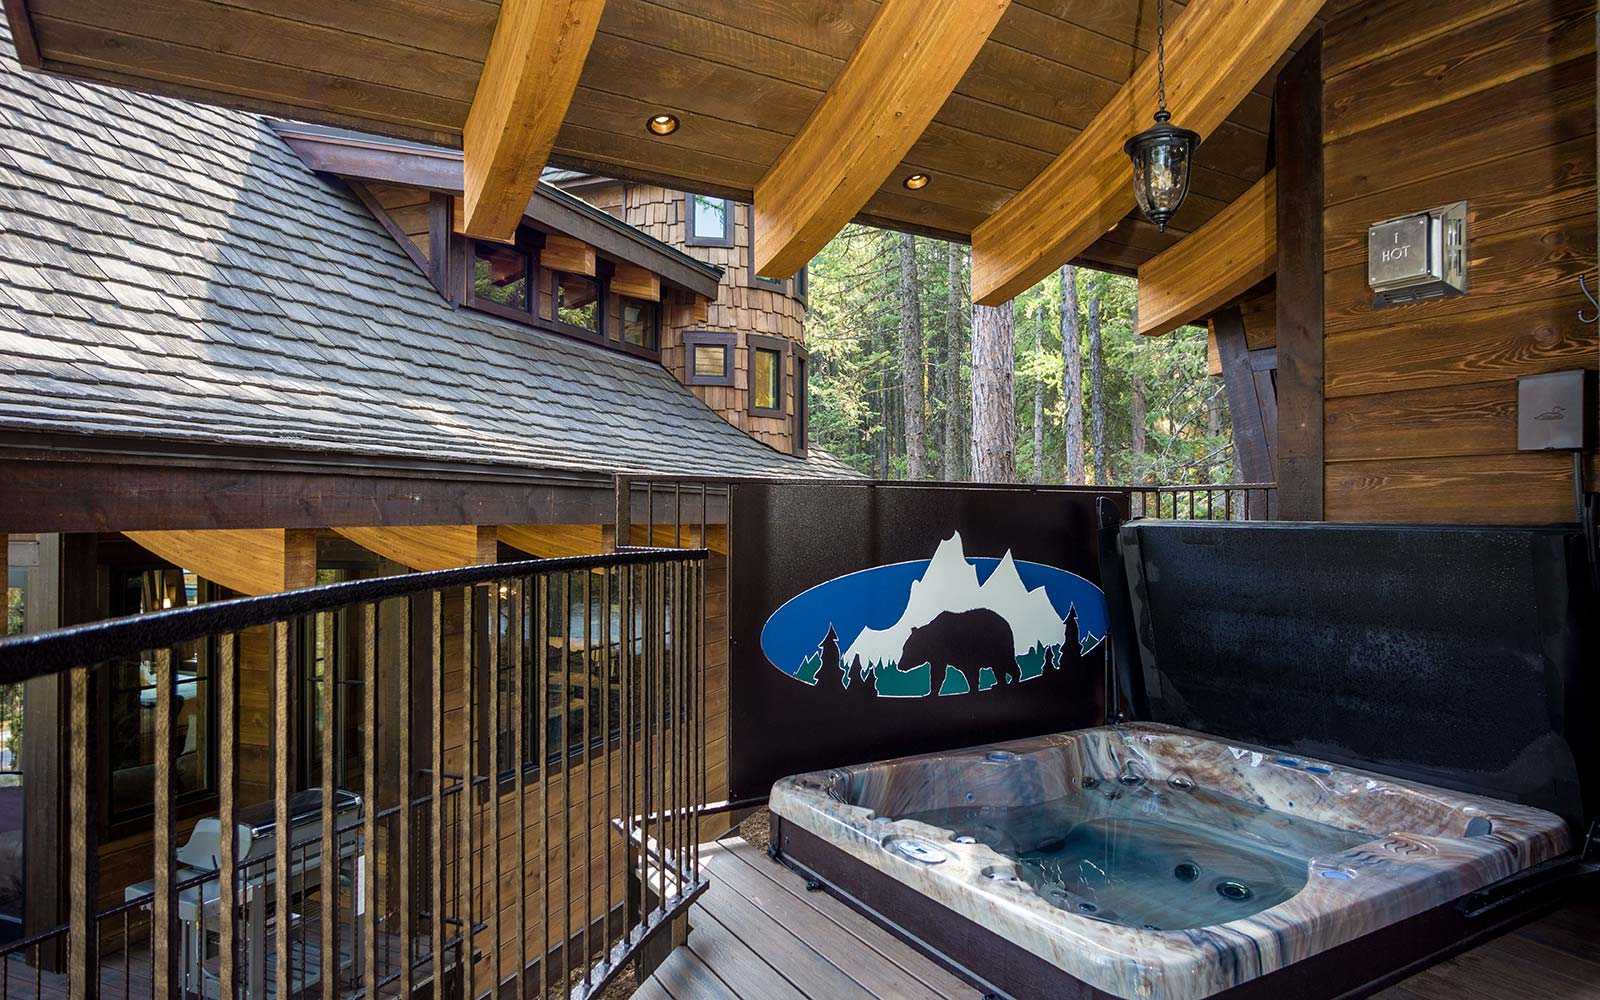 snow bear chalets rental homeaway whitefish mountain ski resort